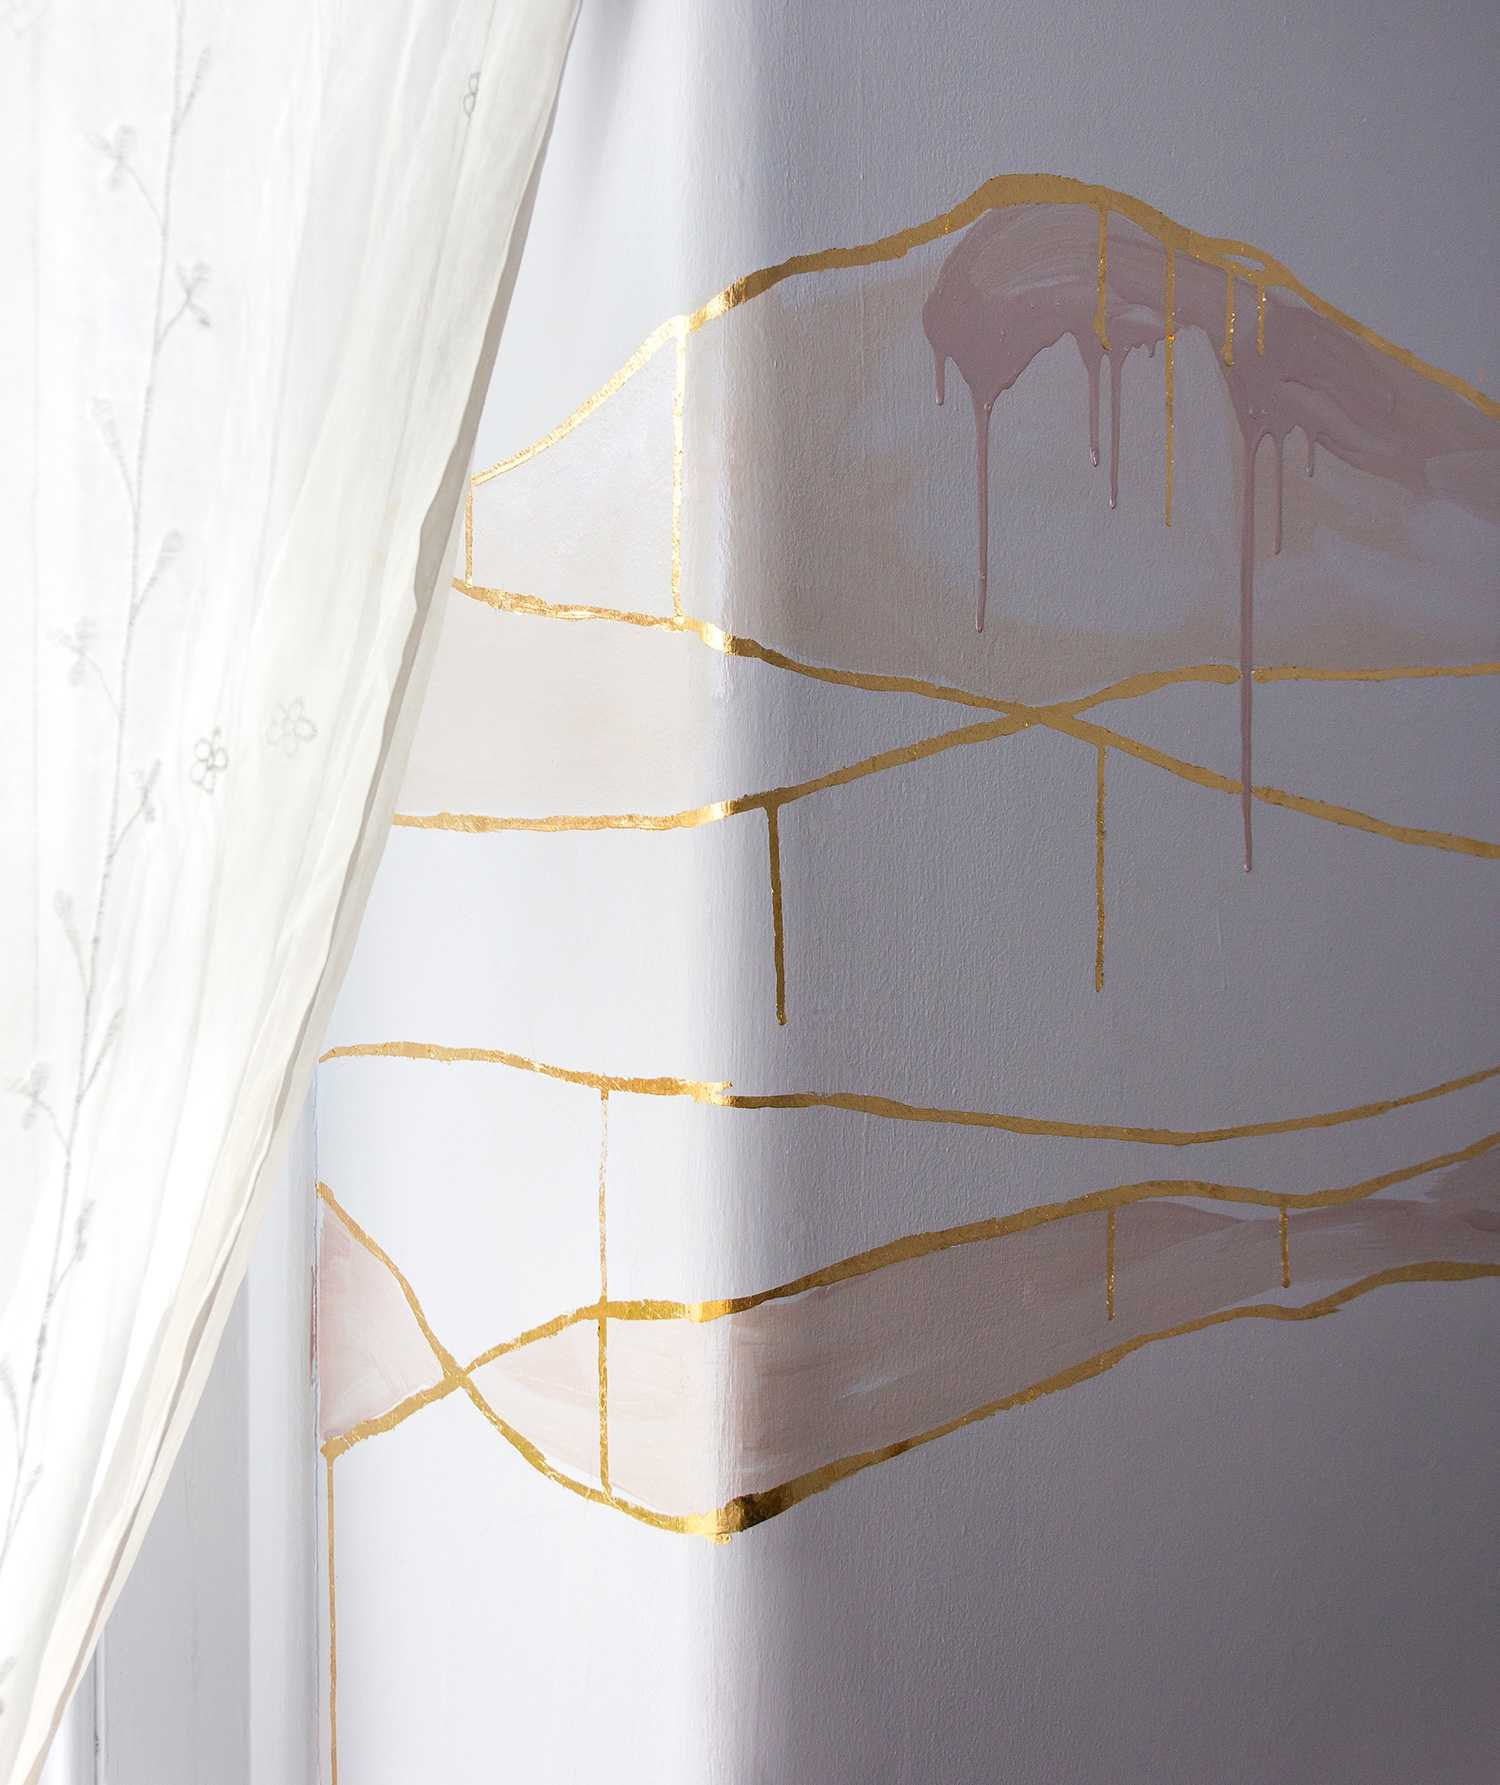 Close up gold leaf feature wall in cosy bedroom, the wall features wavy lines in gold and pink metallic paint. Light pours through a thin white curtain.